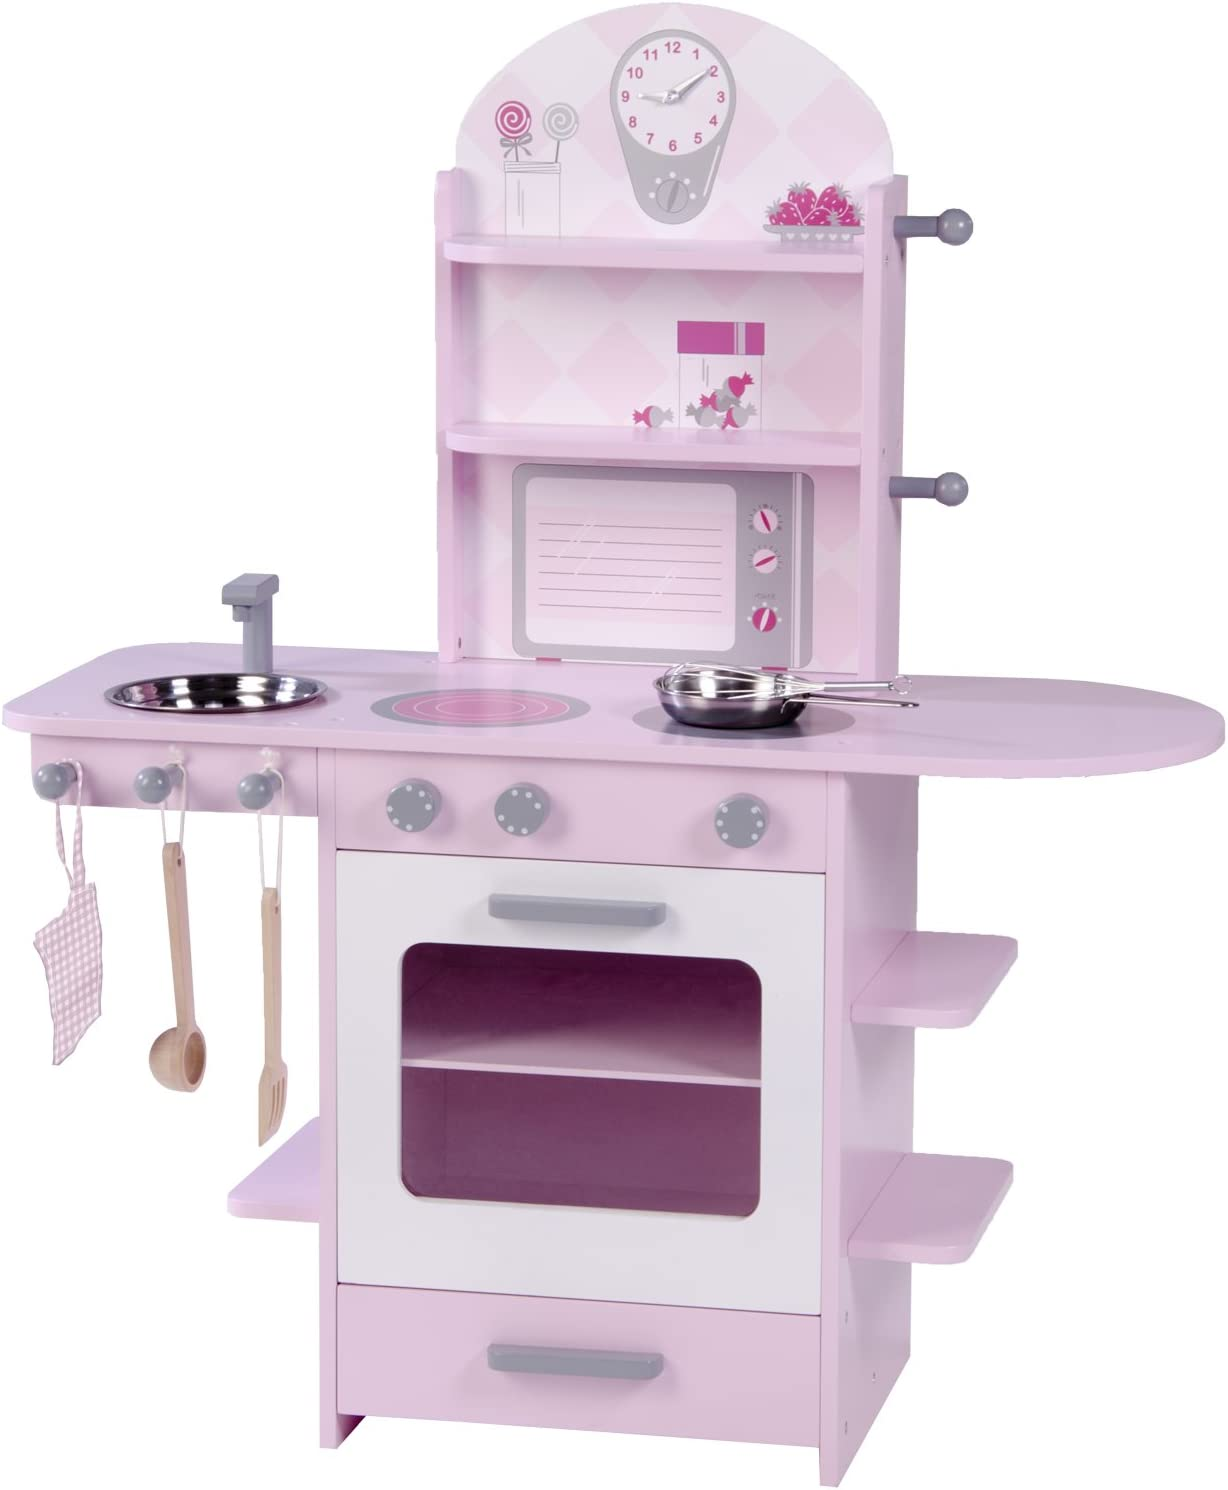 Roba Play Kitchen Wooden Kitchen Pink Girl Children's Kitchen with Stove, Sink, Faucet & Shelf with Accessories